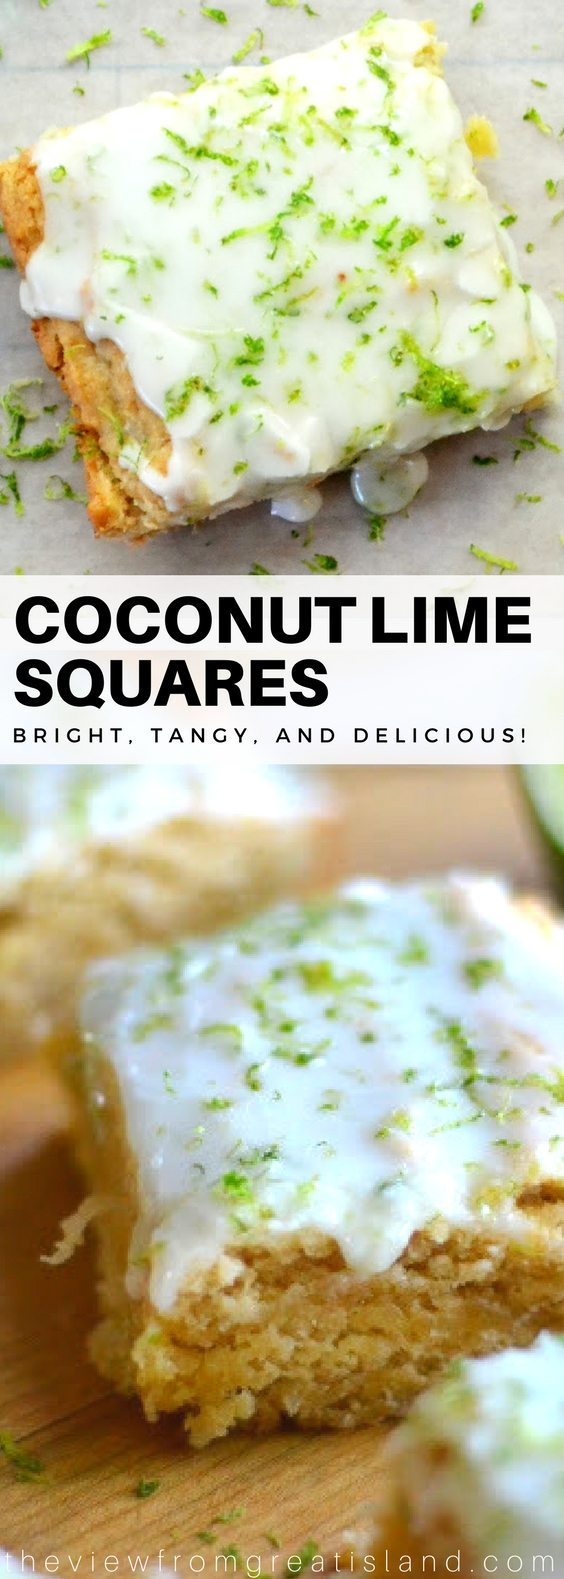 Coconut Lime Squares ~ When the craving for rum, fresh coconut, and lime hits, this is your go to dessert. Basically it's a coconut rum blondie with a lime glaze! #coconut #lime #tropicaldessert #dessert #summer #blondies #bars #coconutlime #dessertbars